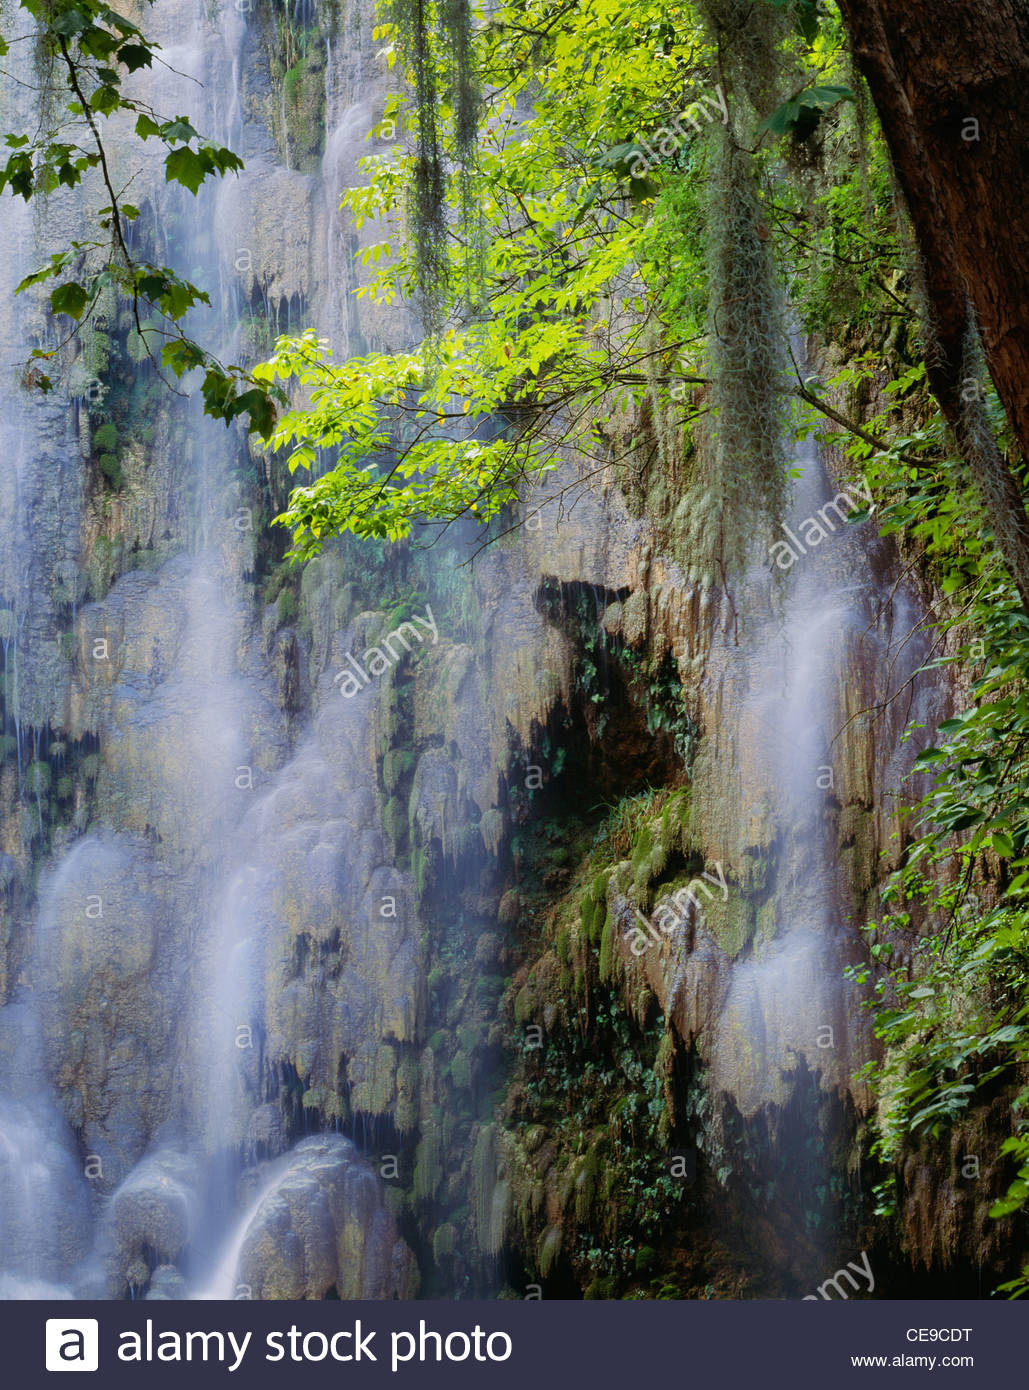 "Waterfall [Sierra Madre Occidental] 'Nuevo Leon "" Messico. Immagini Stock"